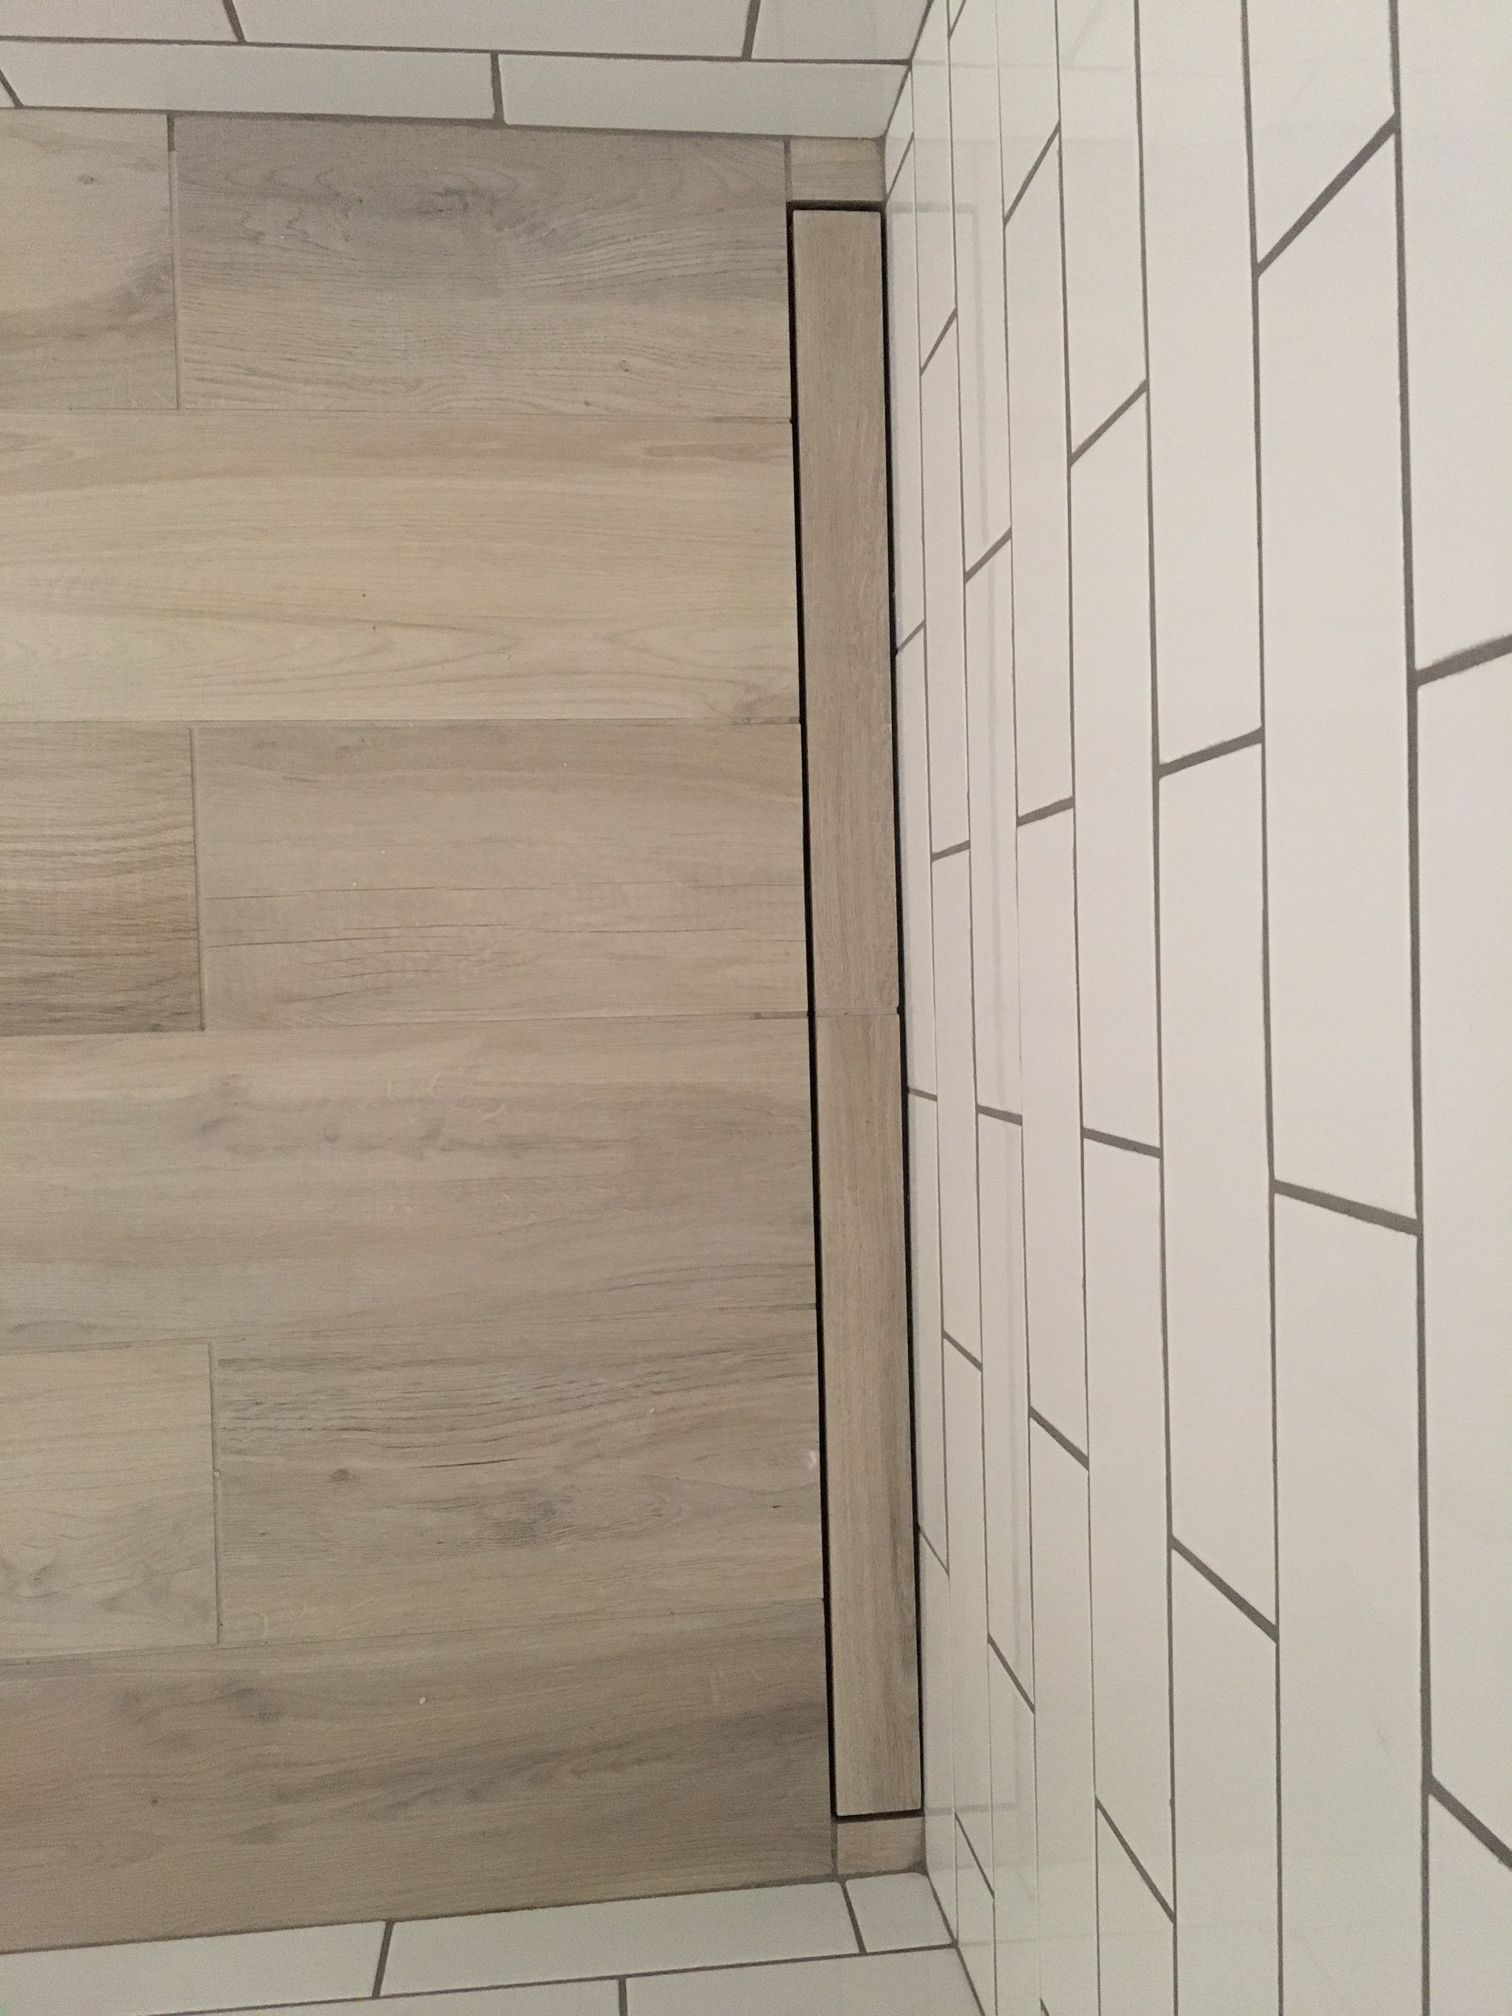 An Interesting Shot Of The Schluter Kerdi Line Drain In The Master Bath Shower Installed With A Beautiful Wood L Master Bath Shower Beautiful Wood Shower Bath